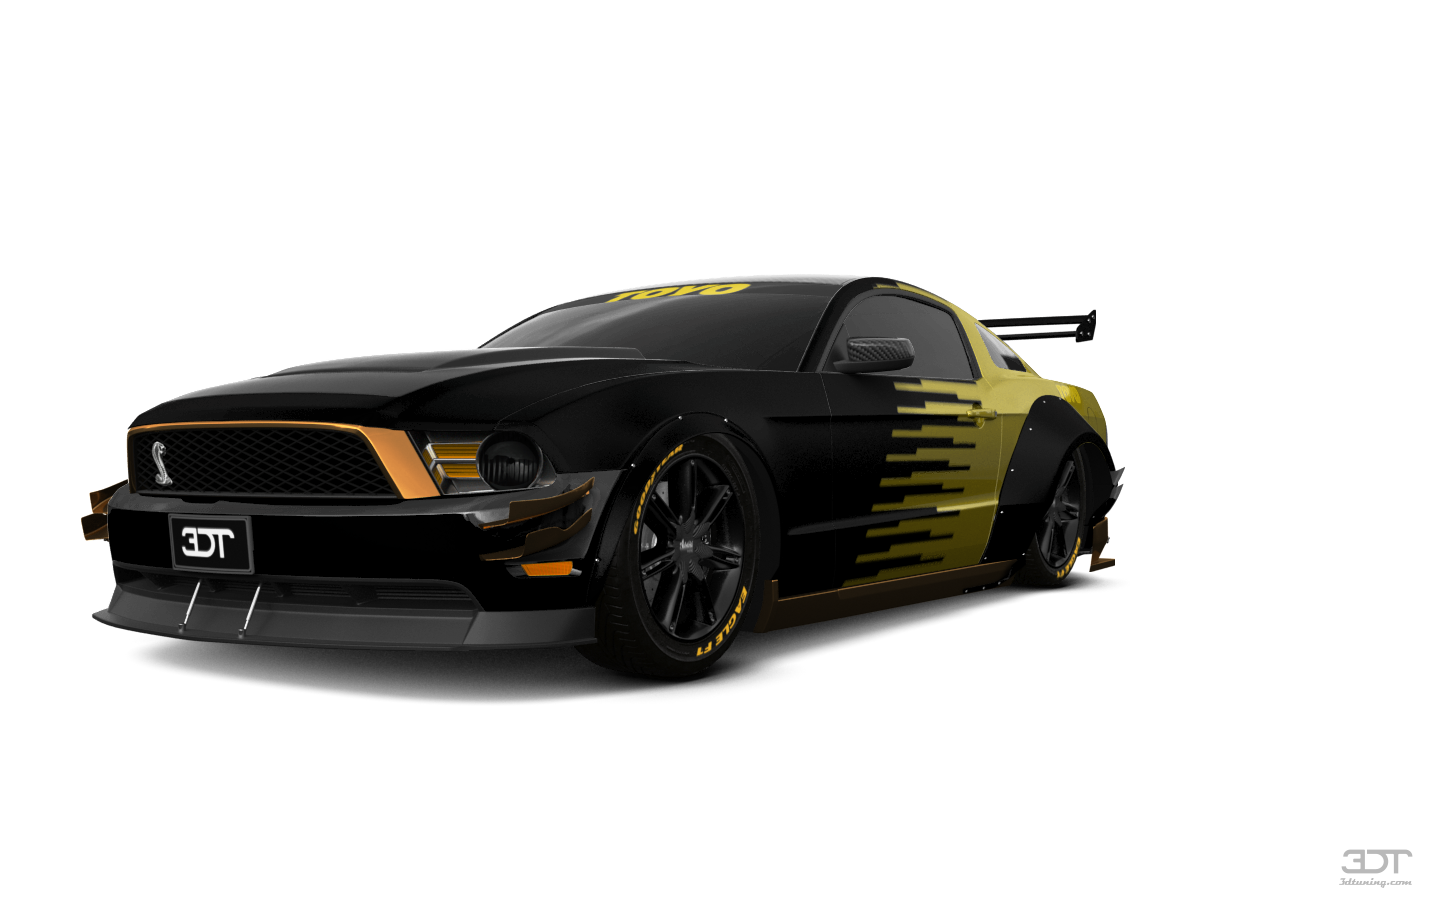 Ford Mustang 2 Door Coupe 2012 tuning